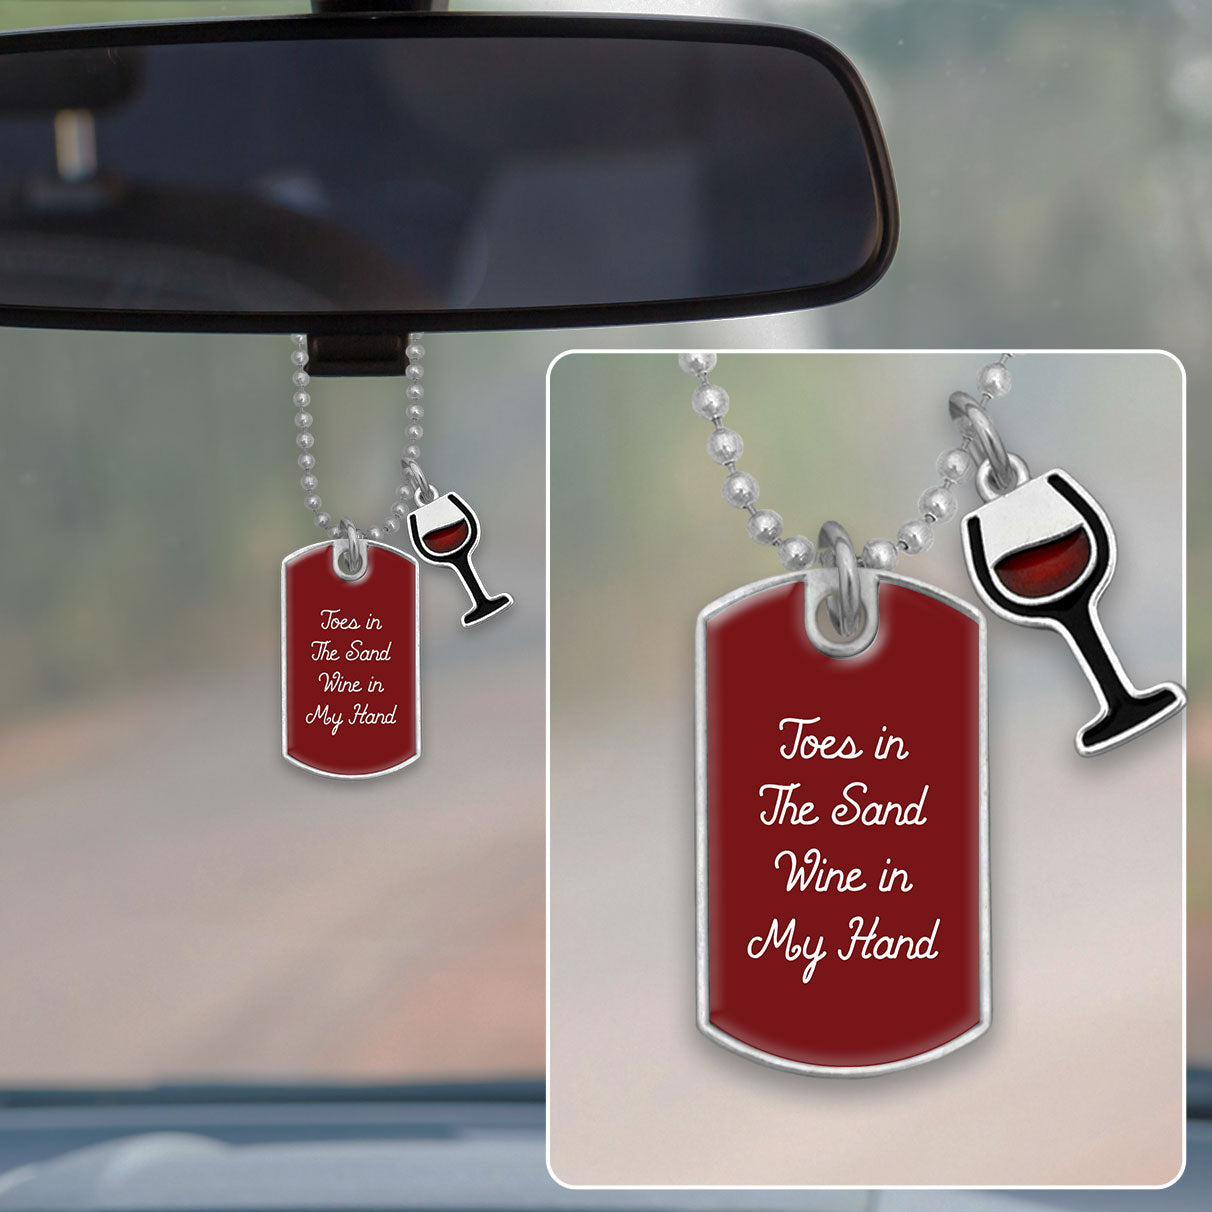 Toes In The Sand, Wine In My Hand Dog Tag Rearview Mirror Charm